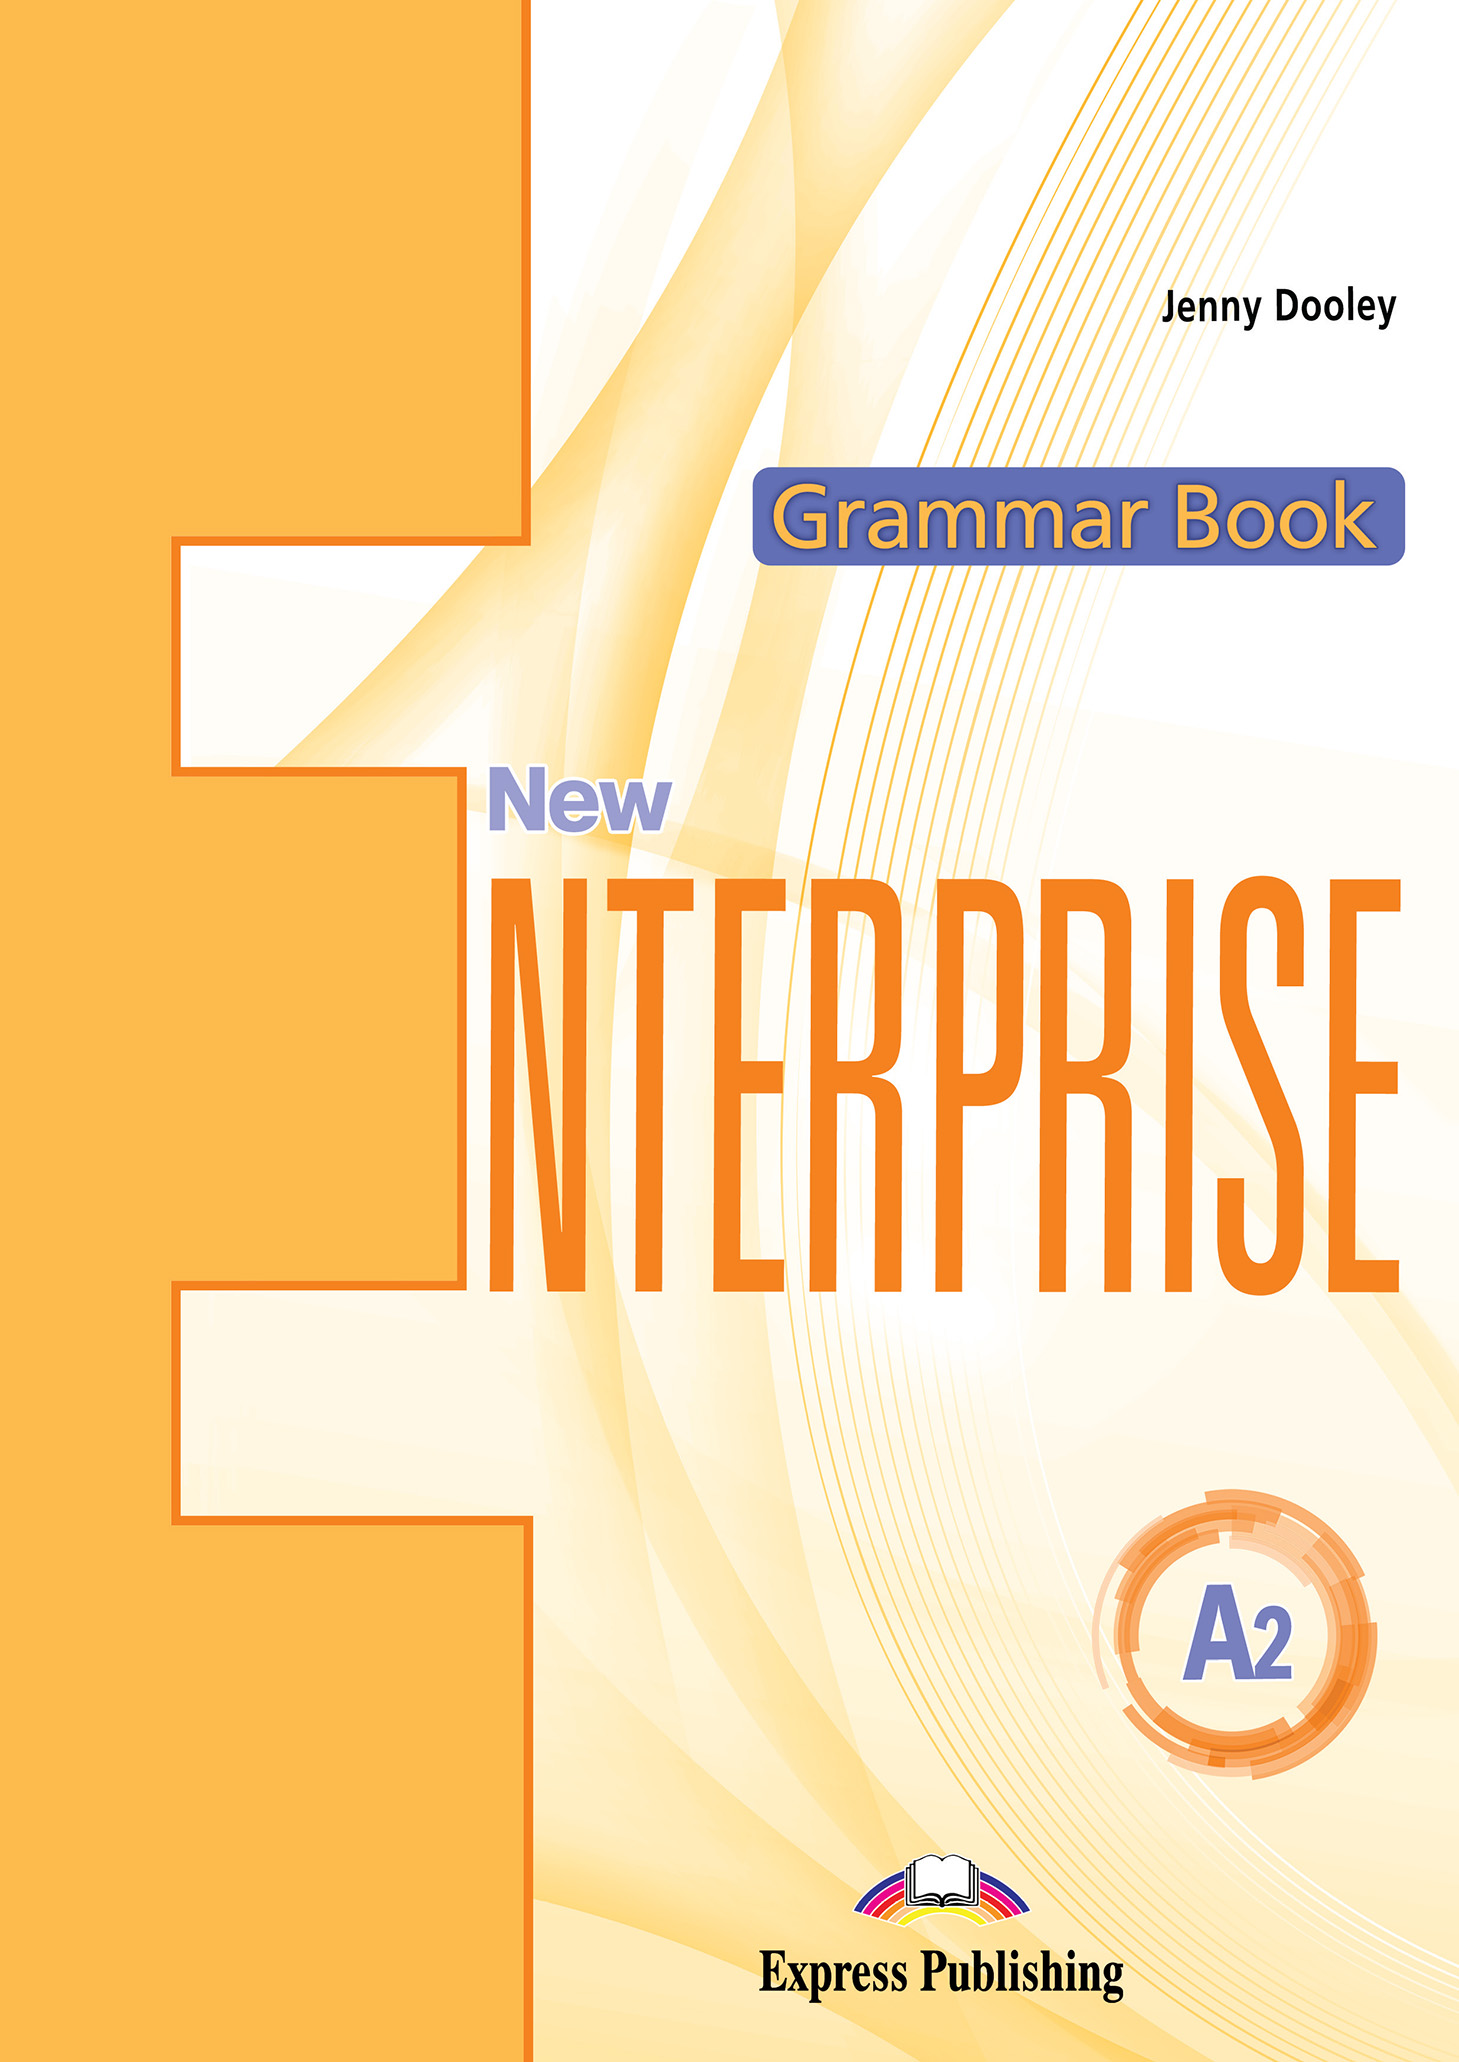 New Enterprise A2 - Grammar Book (with Digibooks App)